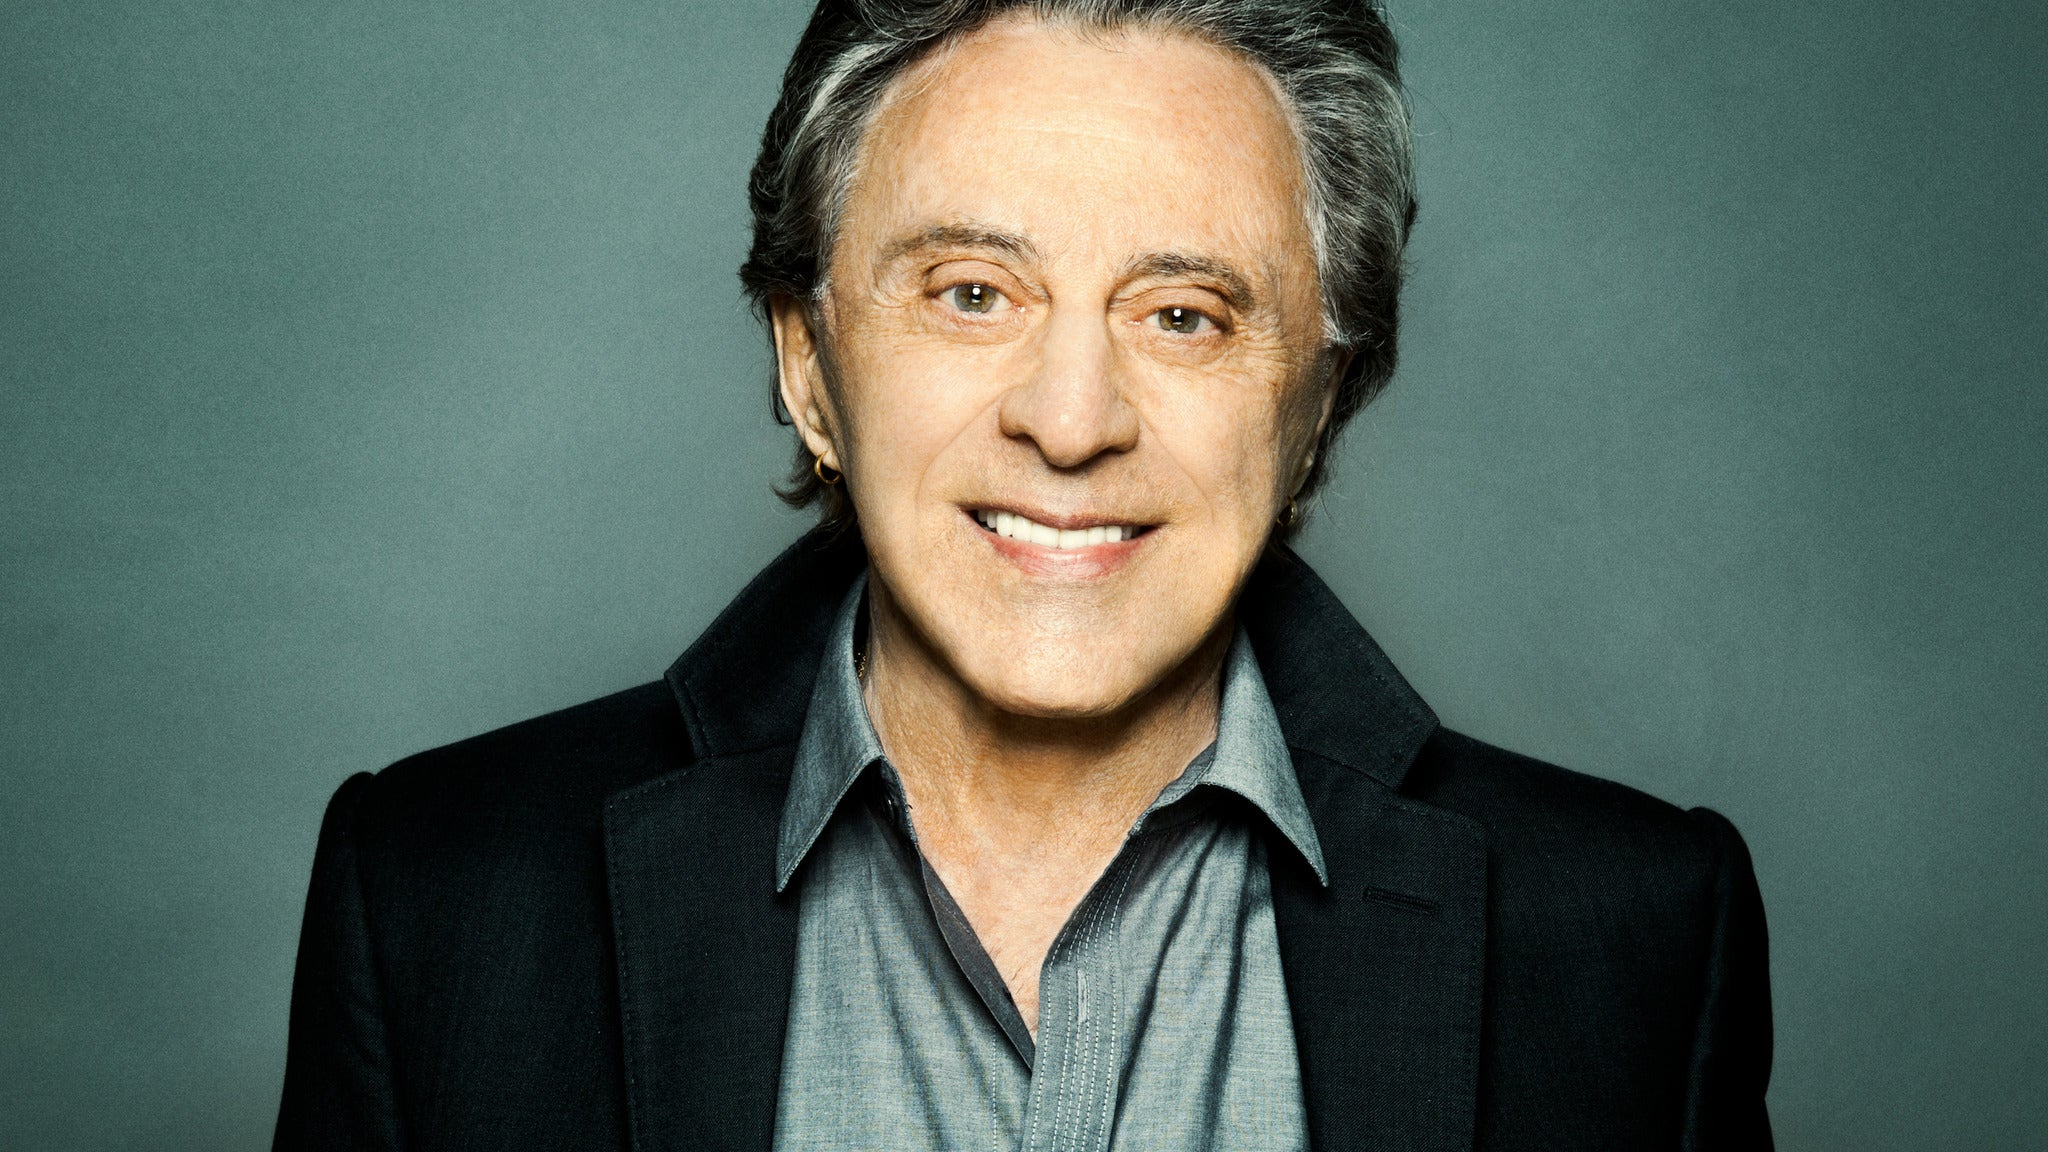 CAP & Danny Zelisko present FRANKIE VALLI & THE FOUR SEASONS